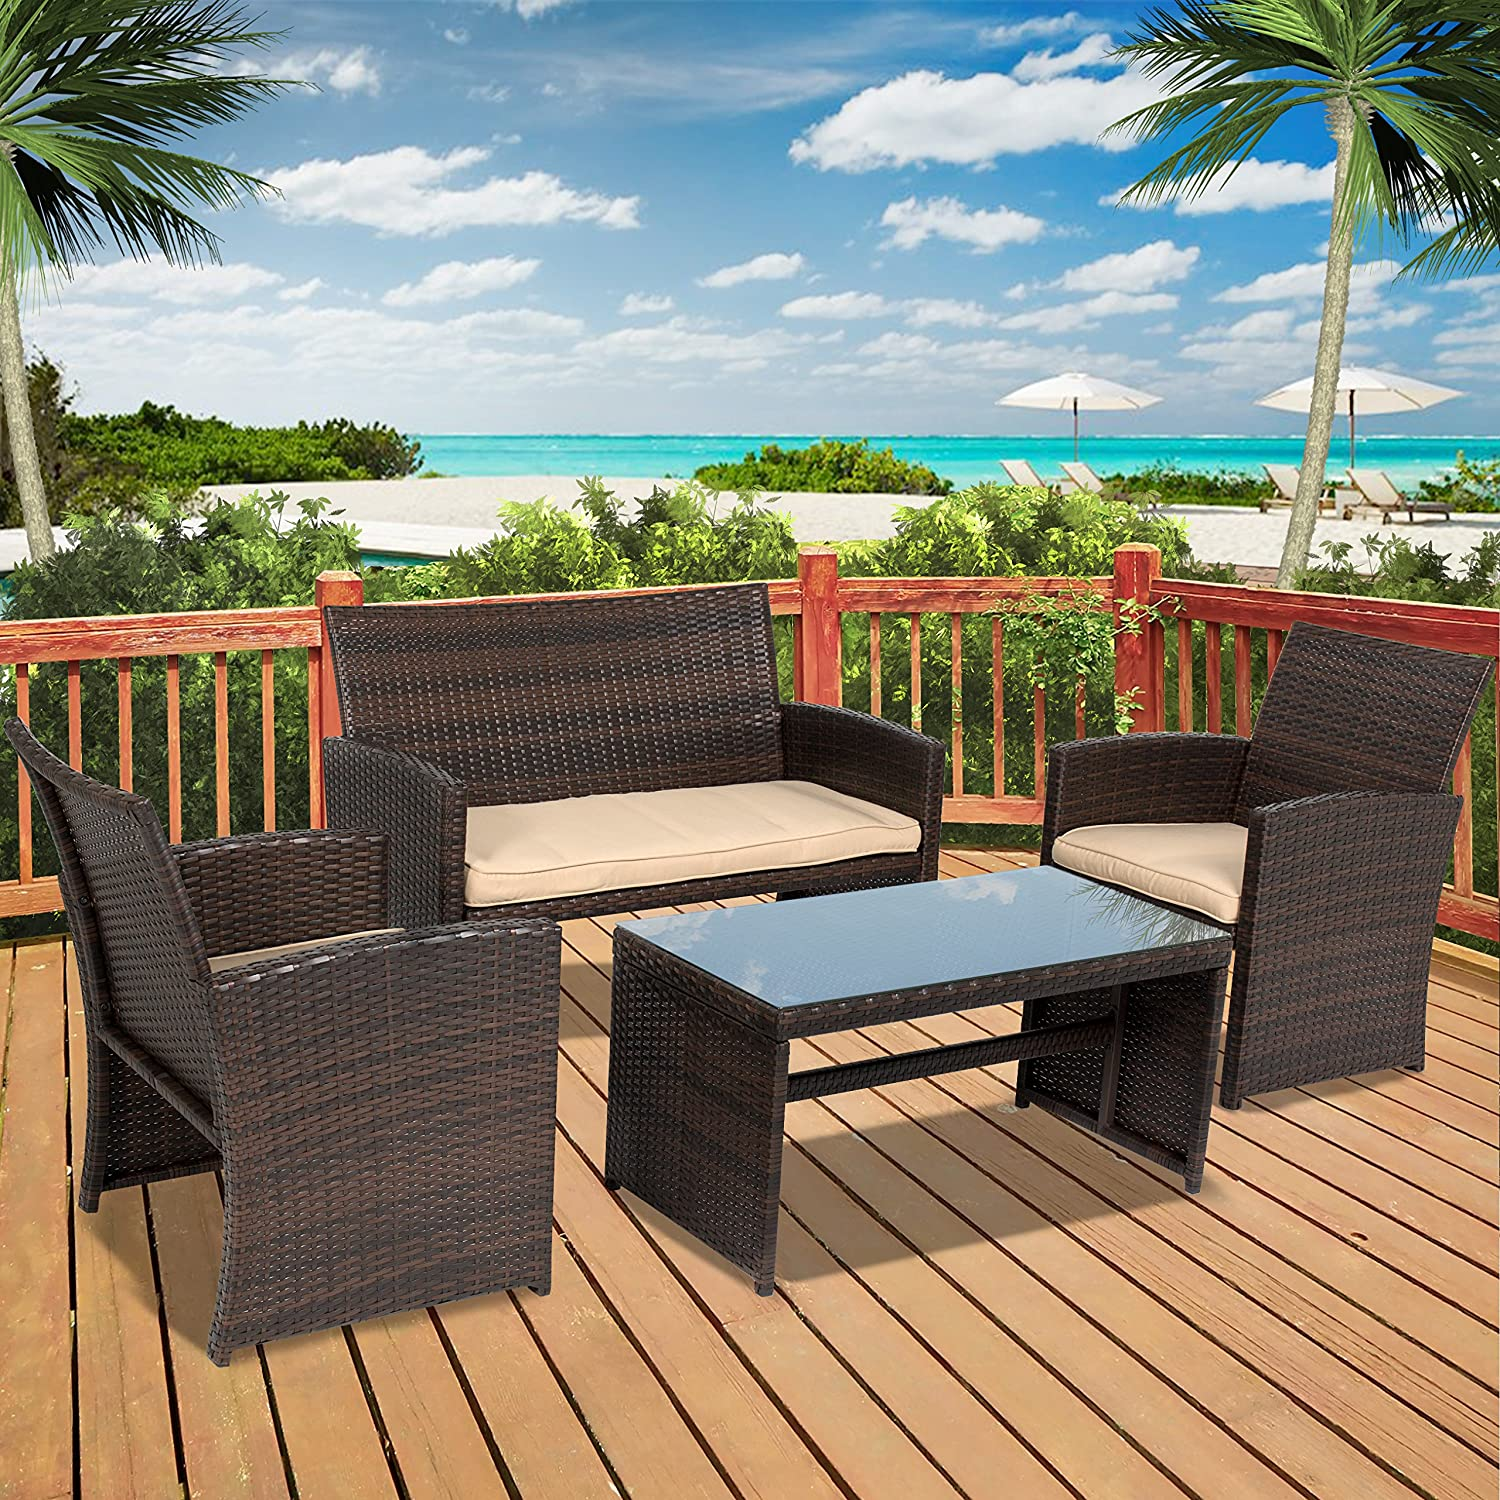 Amazoncom Best Choice Products Pc Wicker Outdoor Patio - Wicker patio furniture sets